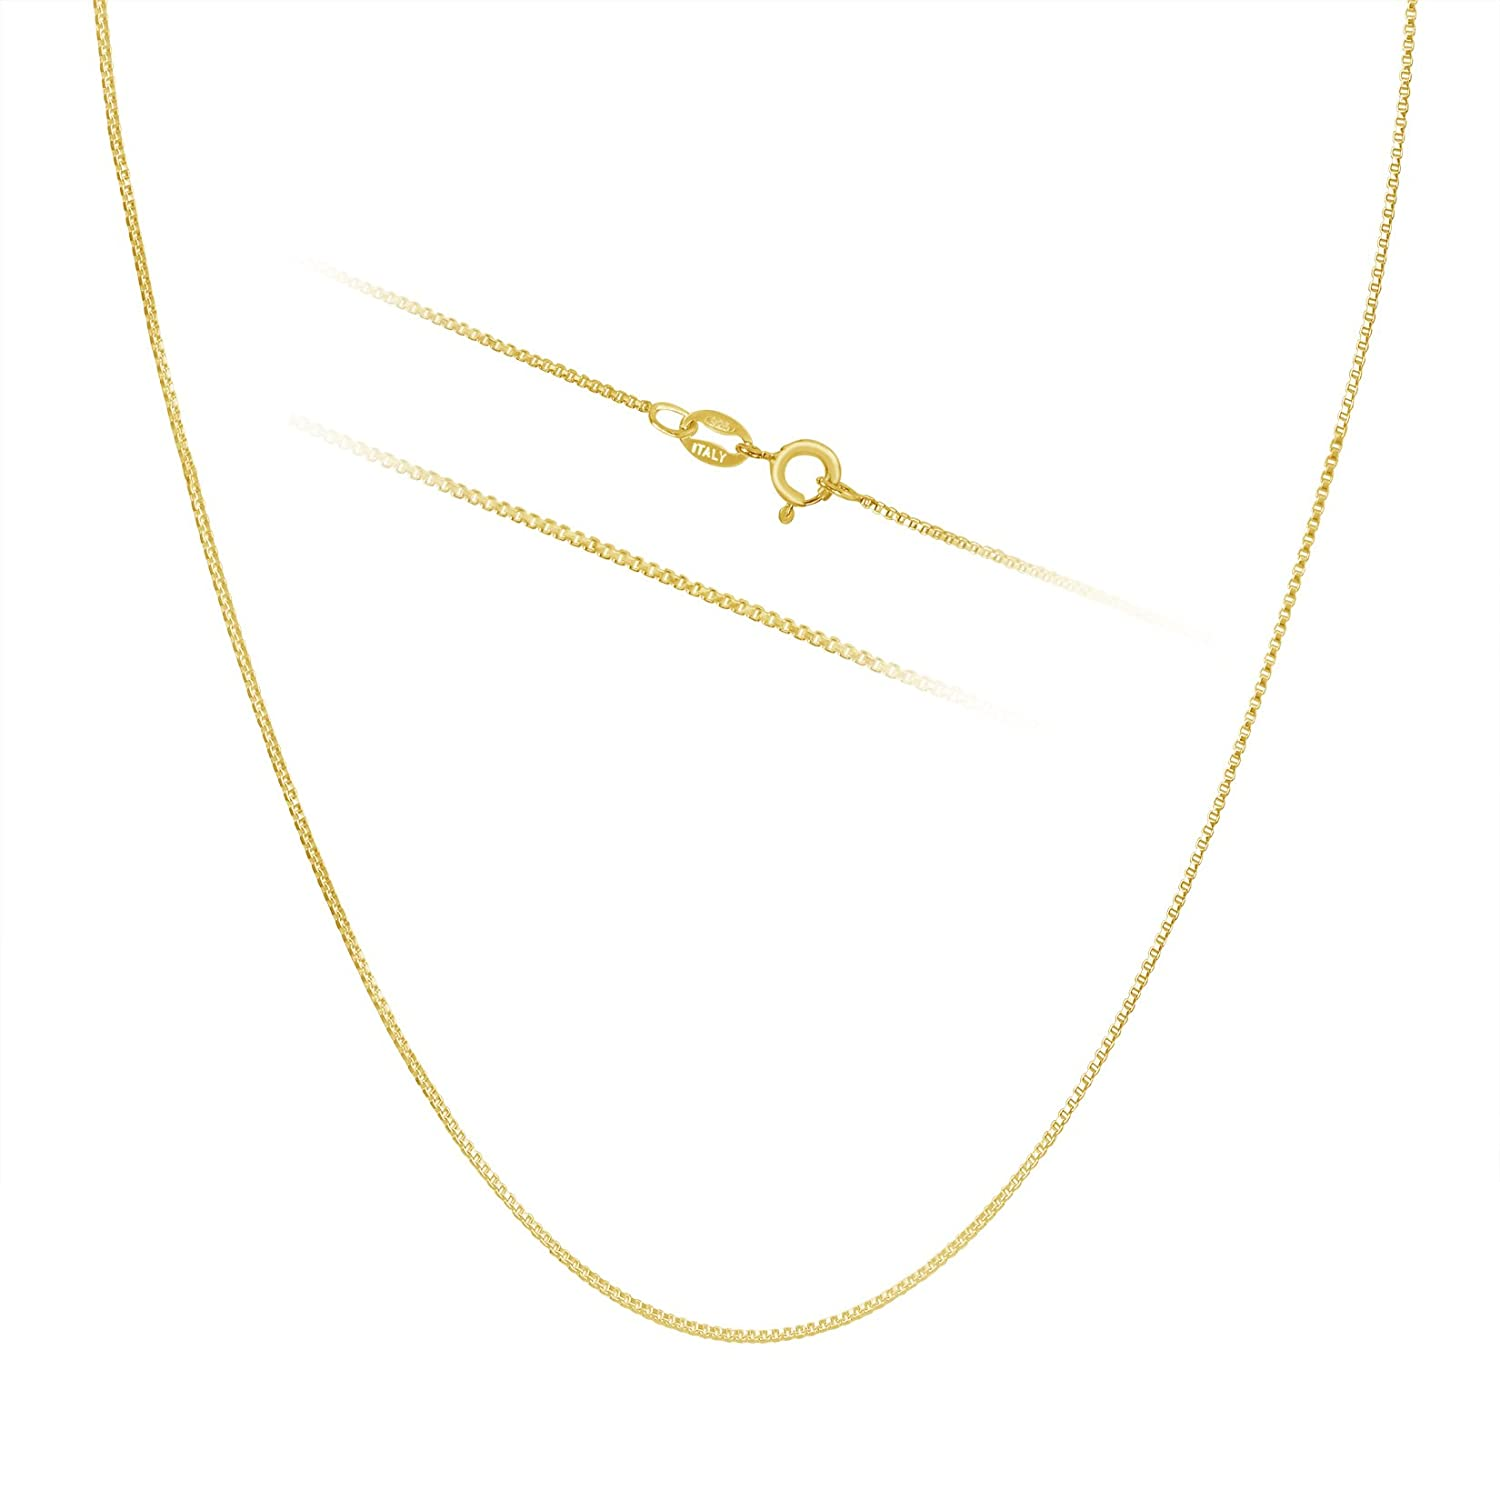 metal strip fashion romantic long hot chain pendant circle gold plated necklace accessory lasso woman bar products